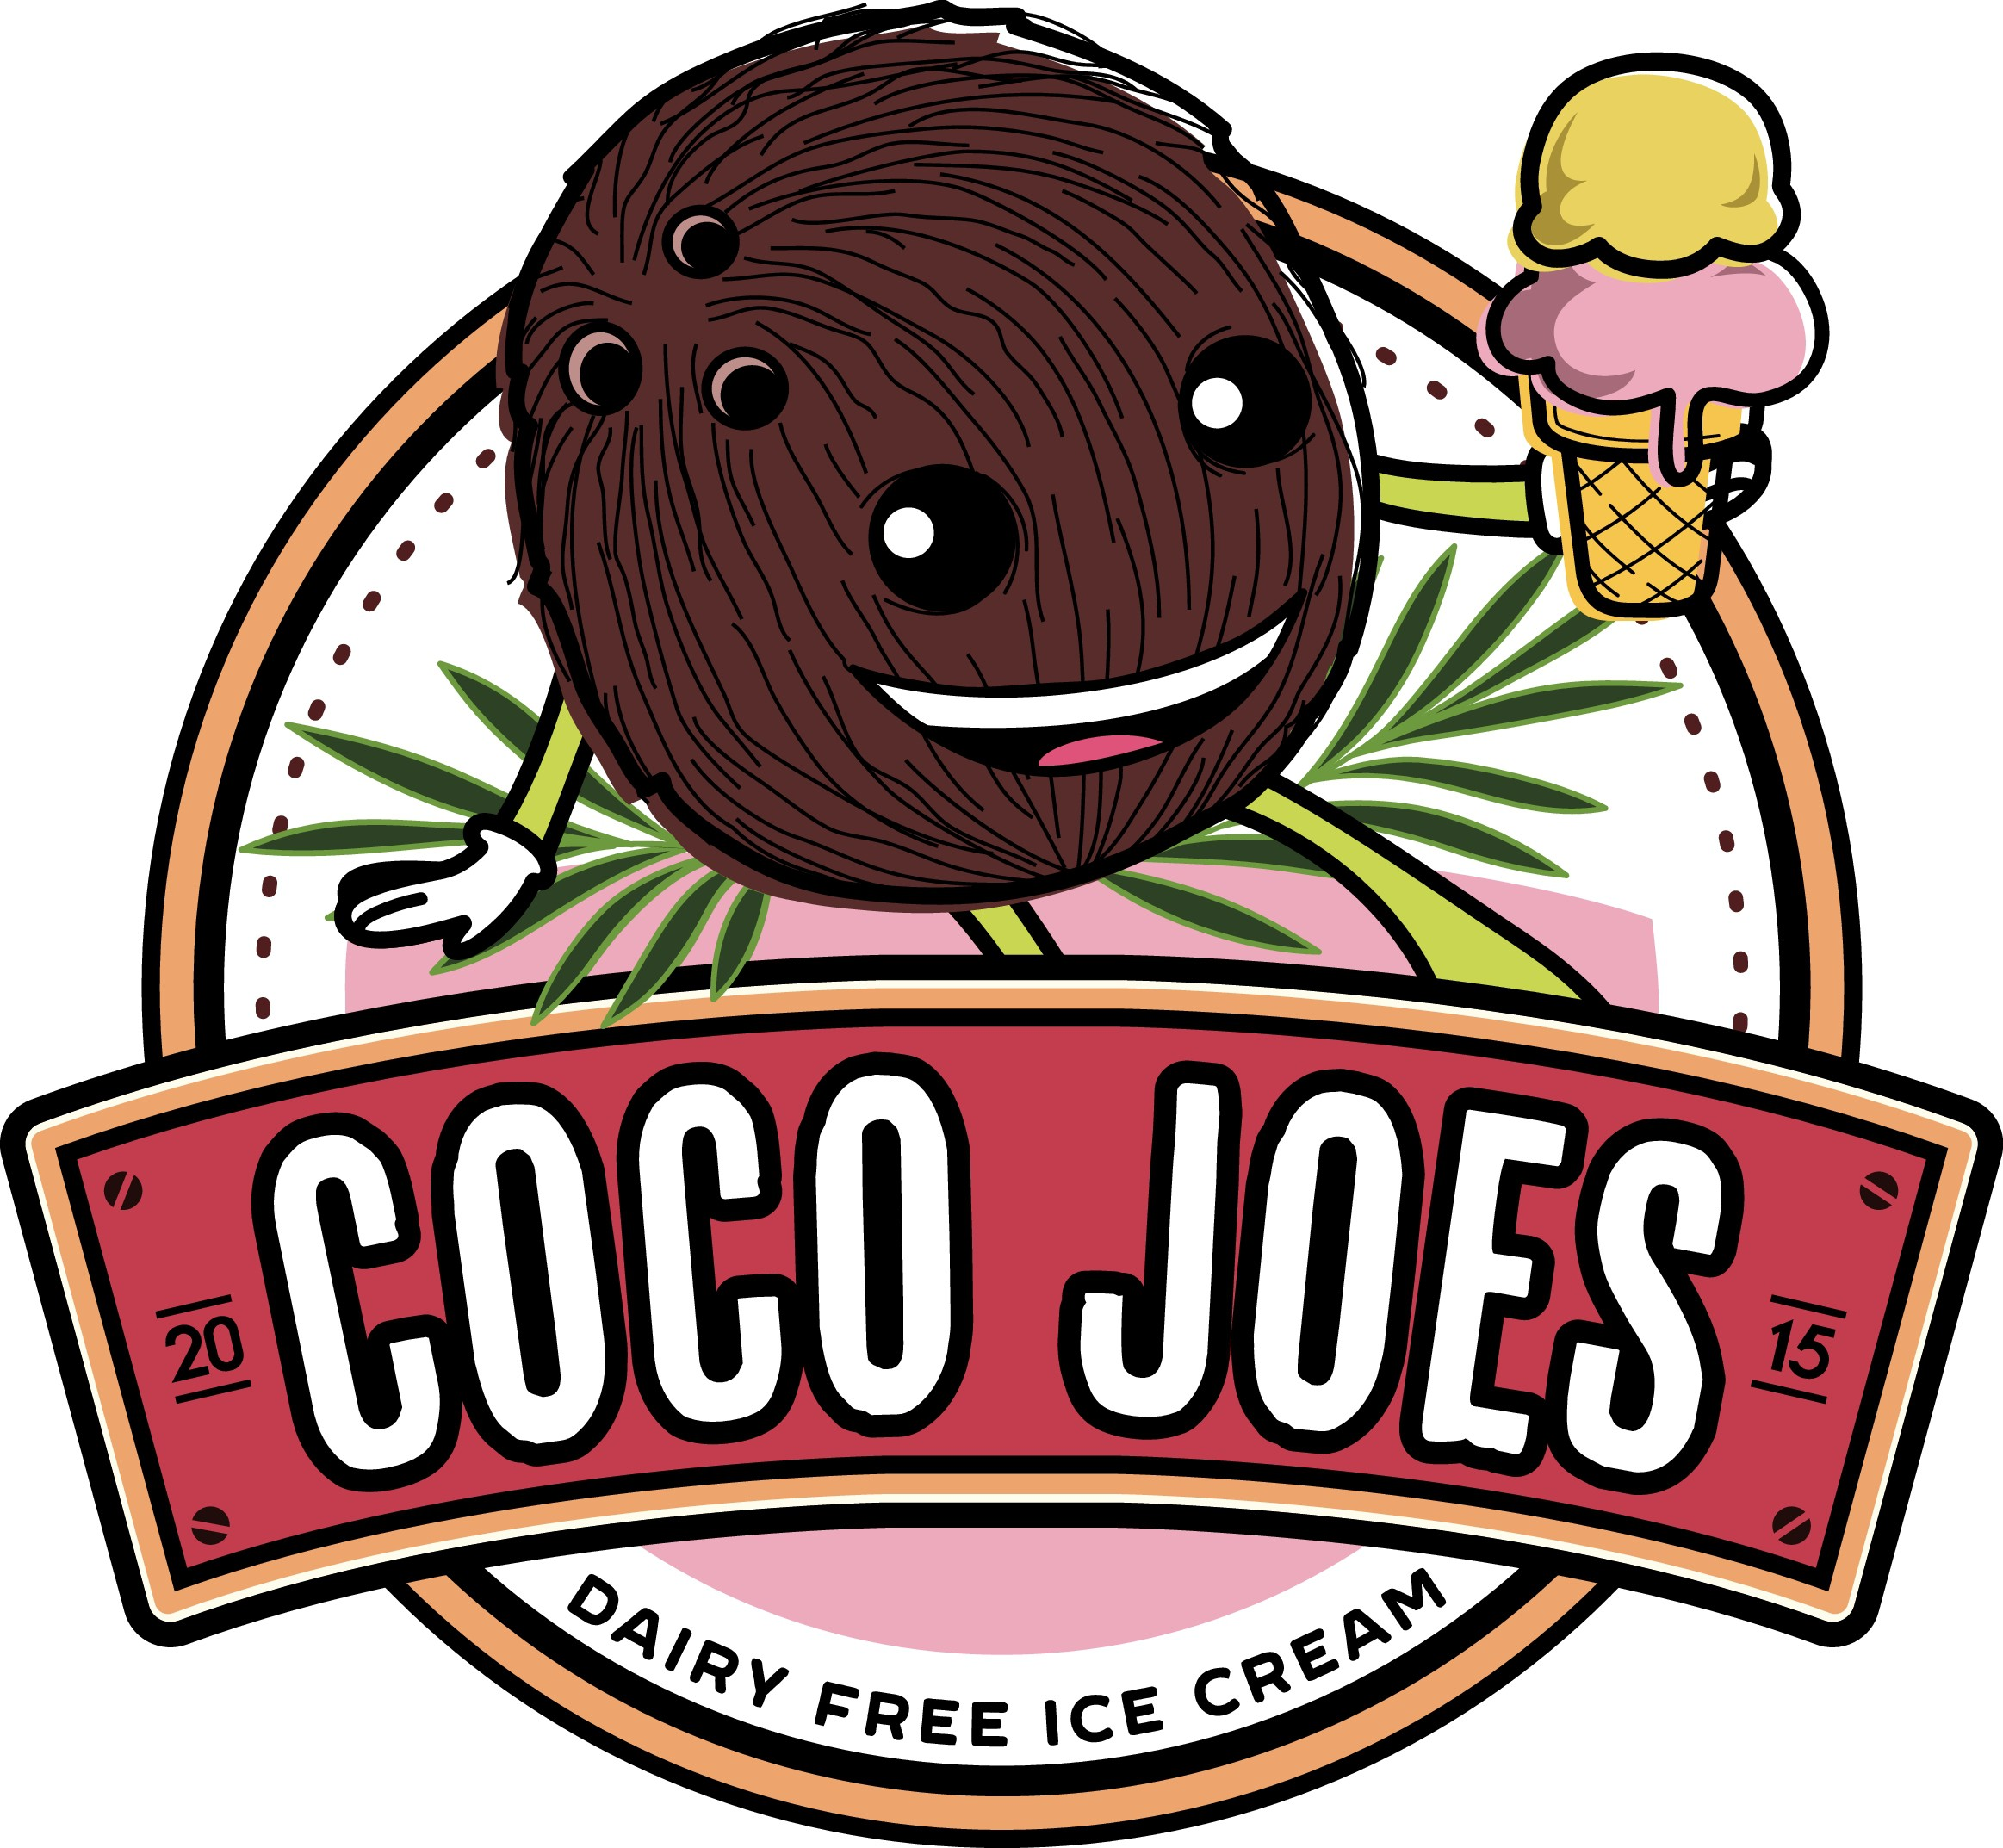 Create a logo for a new dairy-free icecream  business